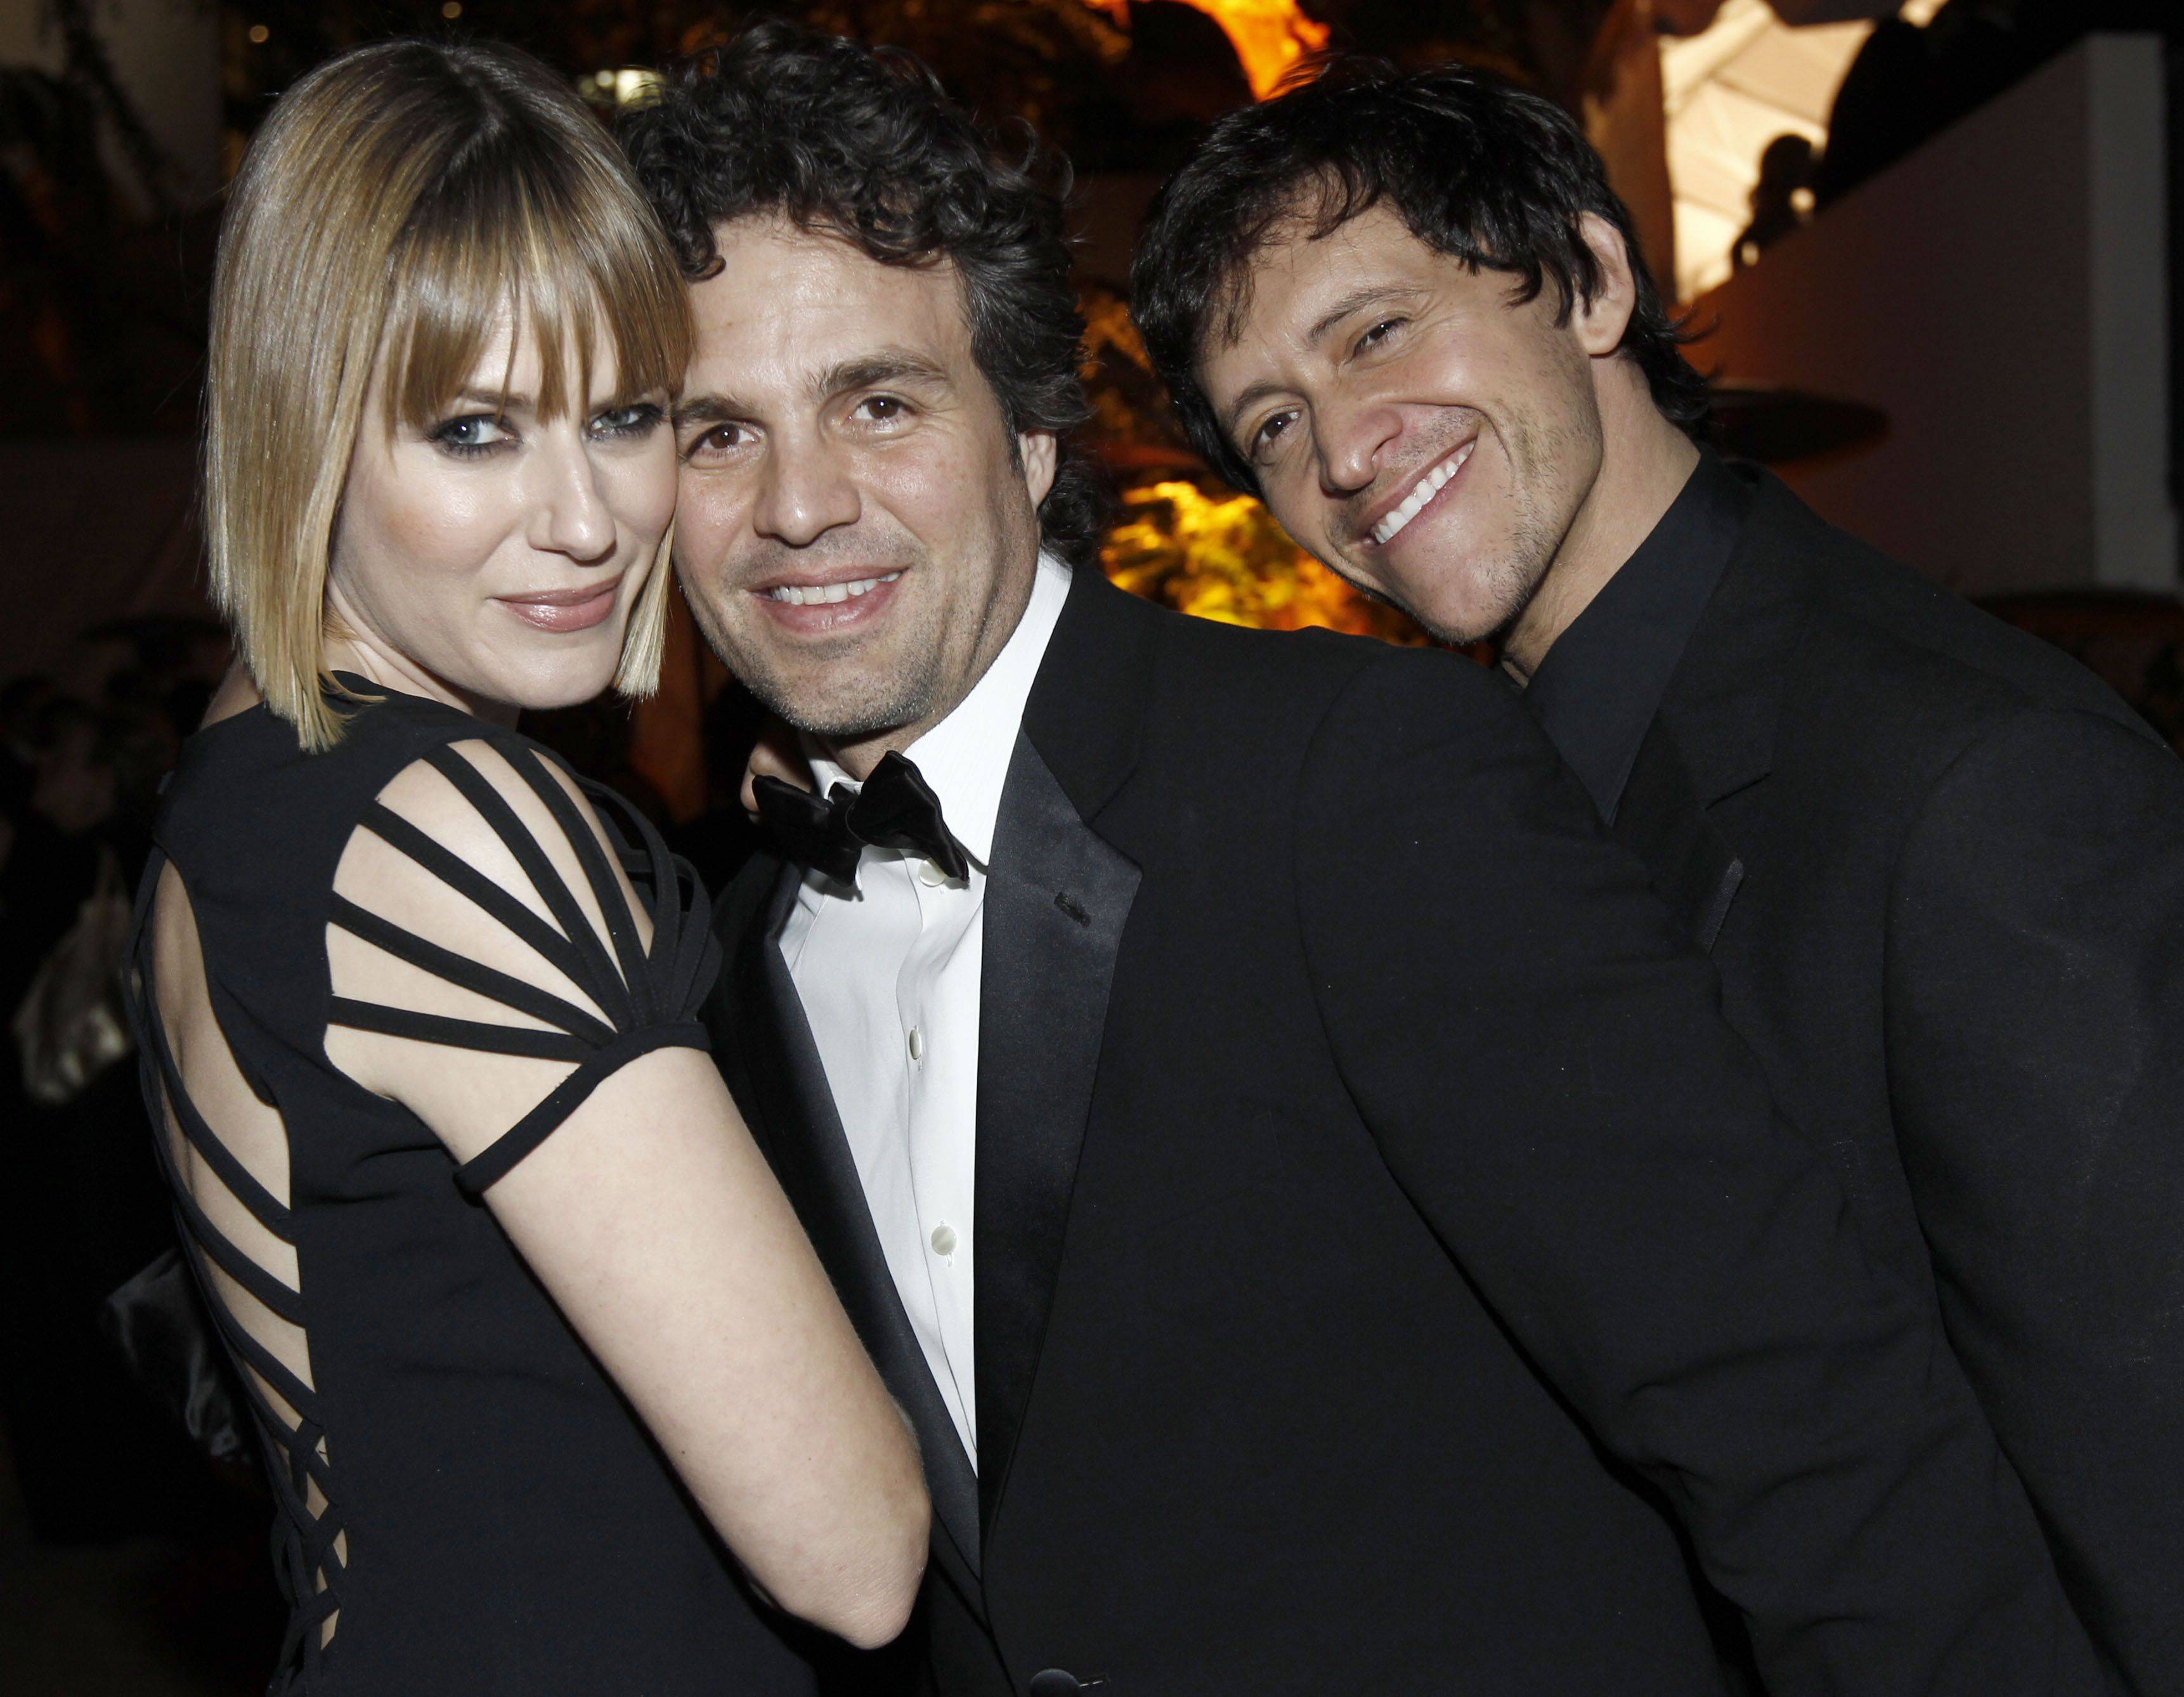 Left to right, Sunrise Coigney, Mark Ruffalo and Clifton Collins Jr.